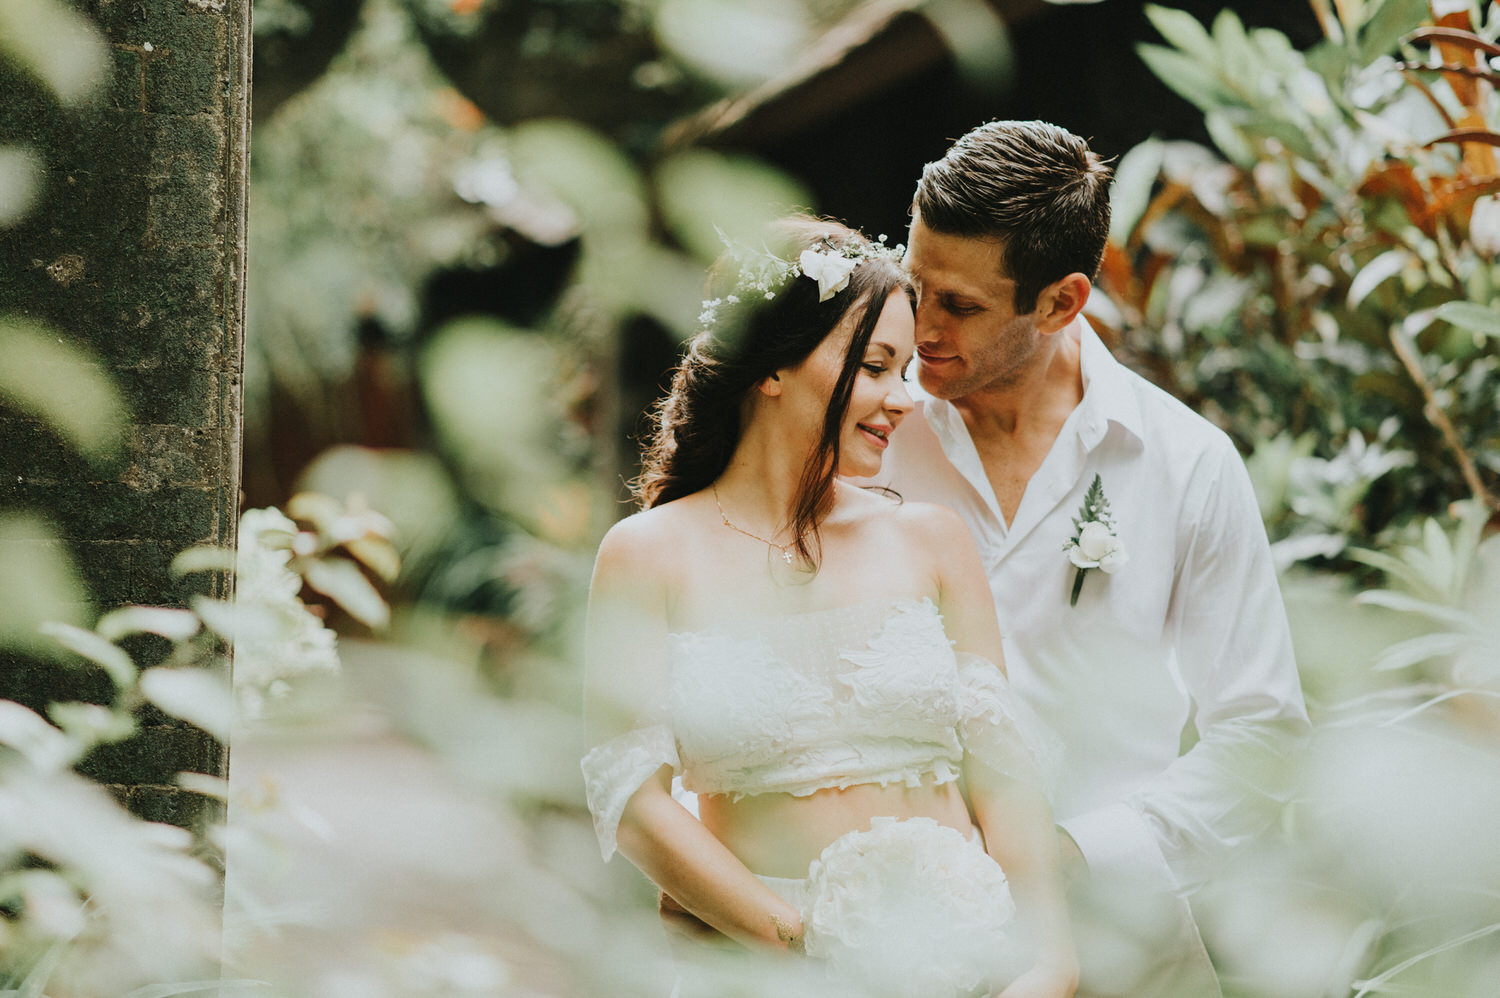 bali wedding - elopement - ubud wedding - diktatphotography - olga + Jason - 67